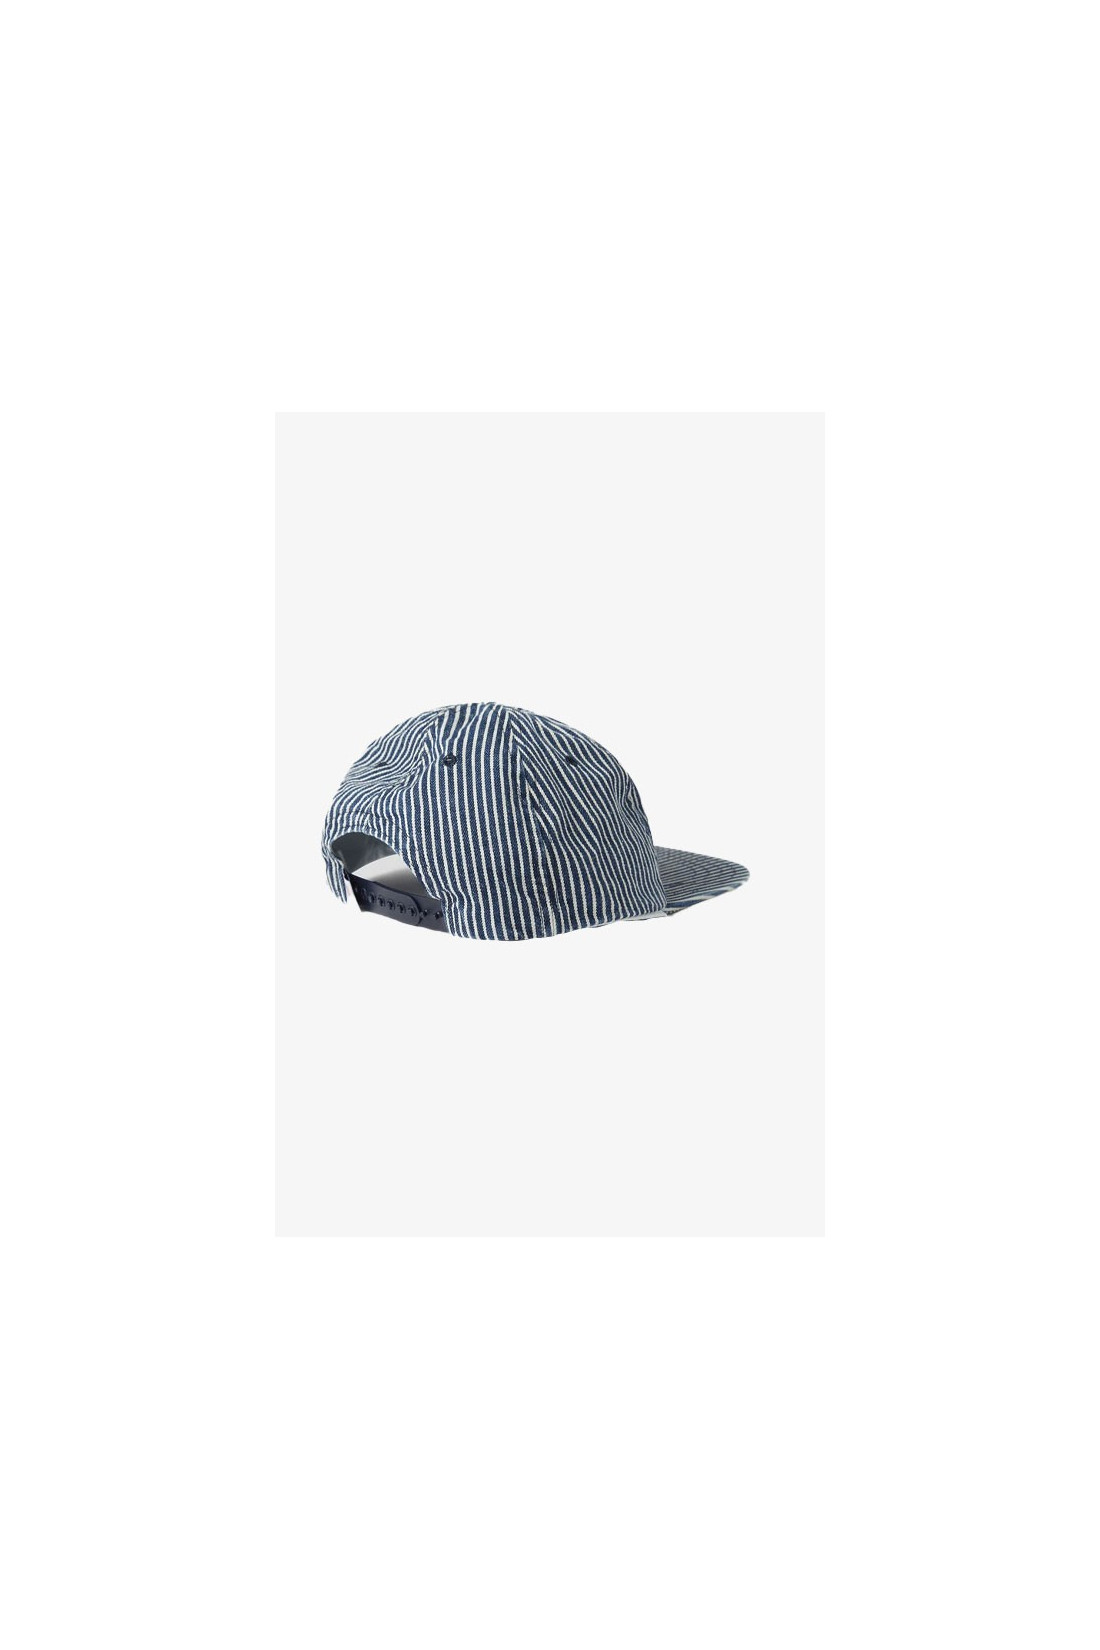 STAN RAY / Ball cap Hickory stripe